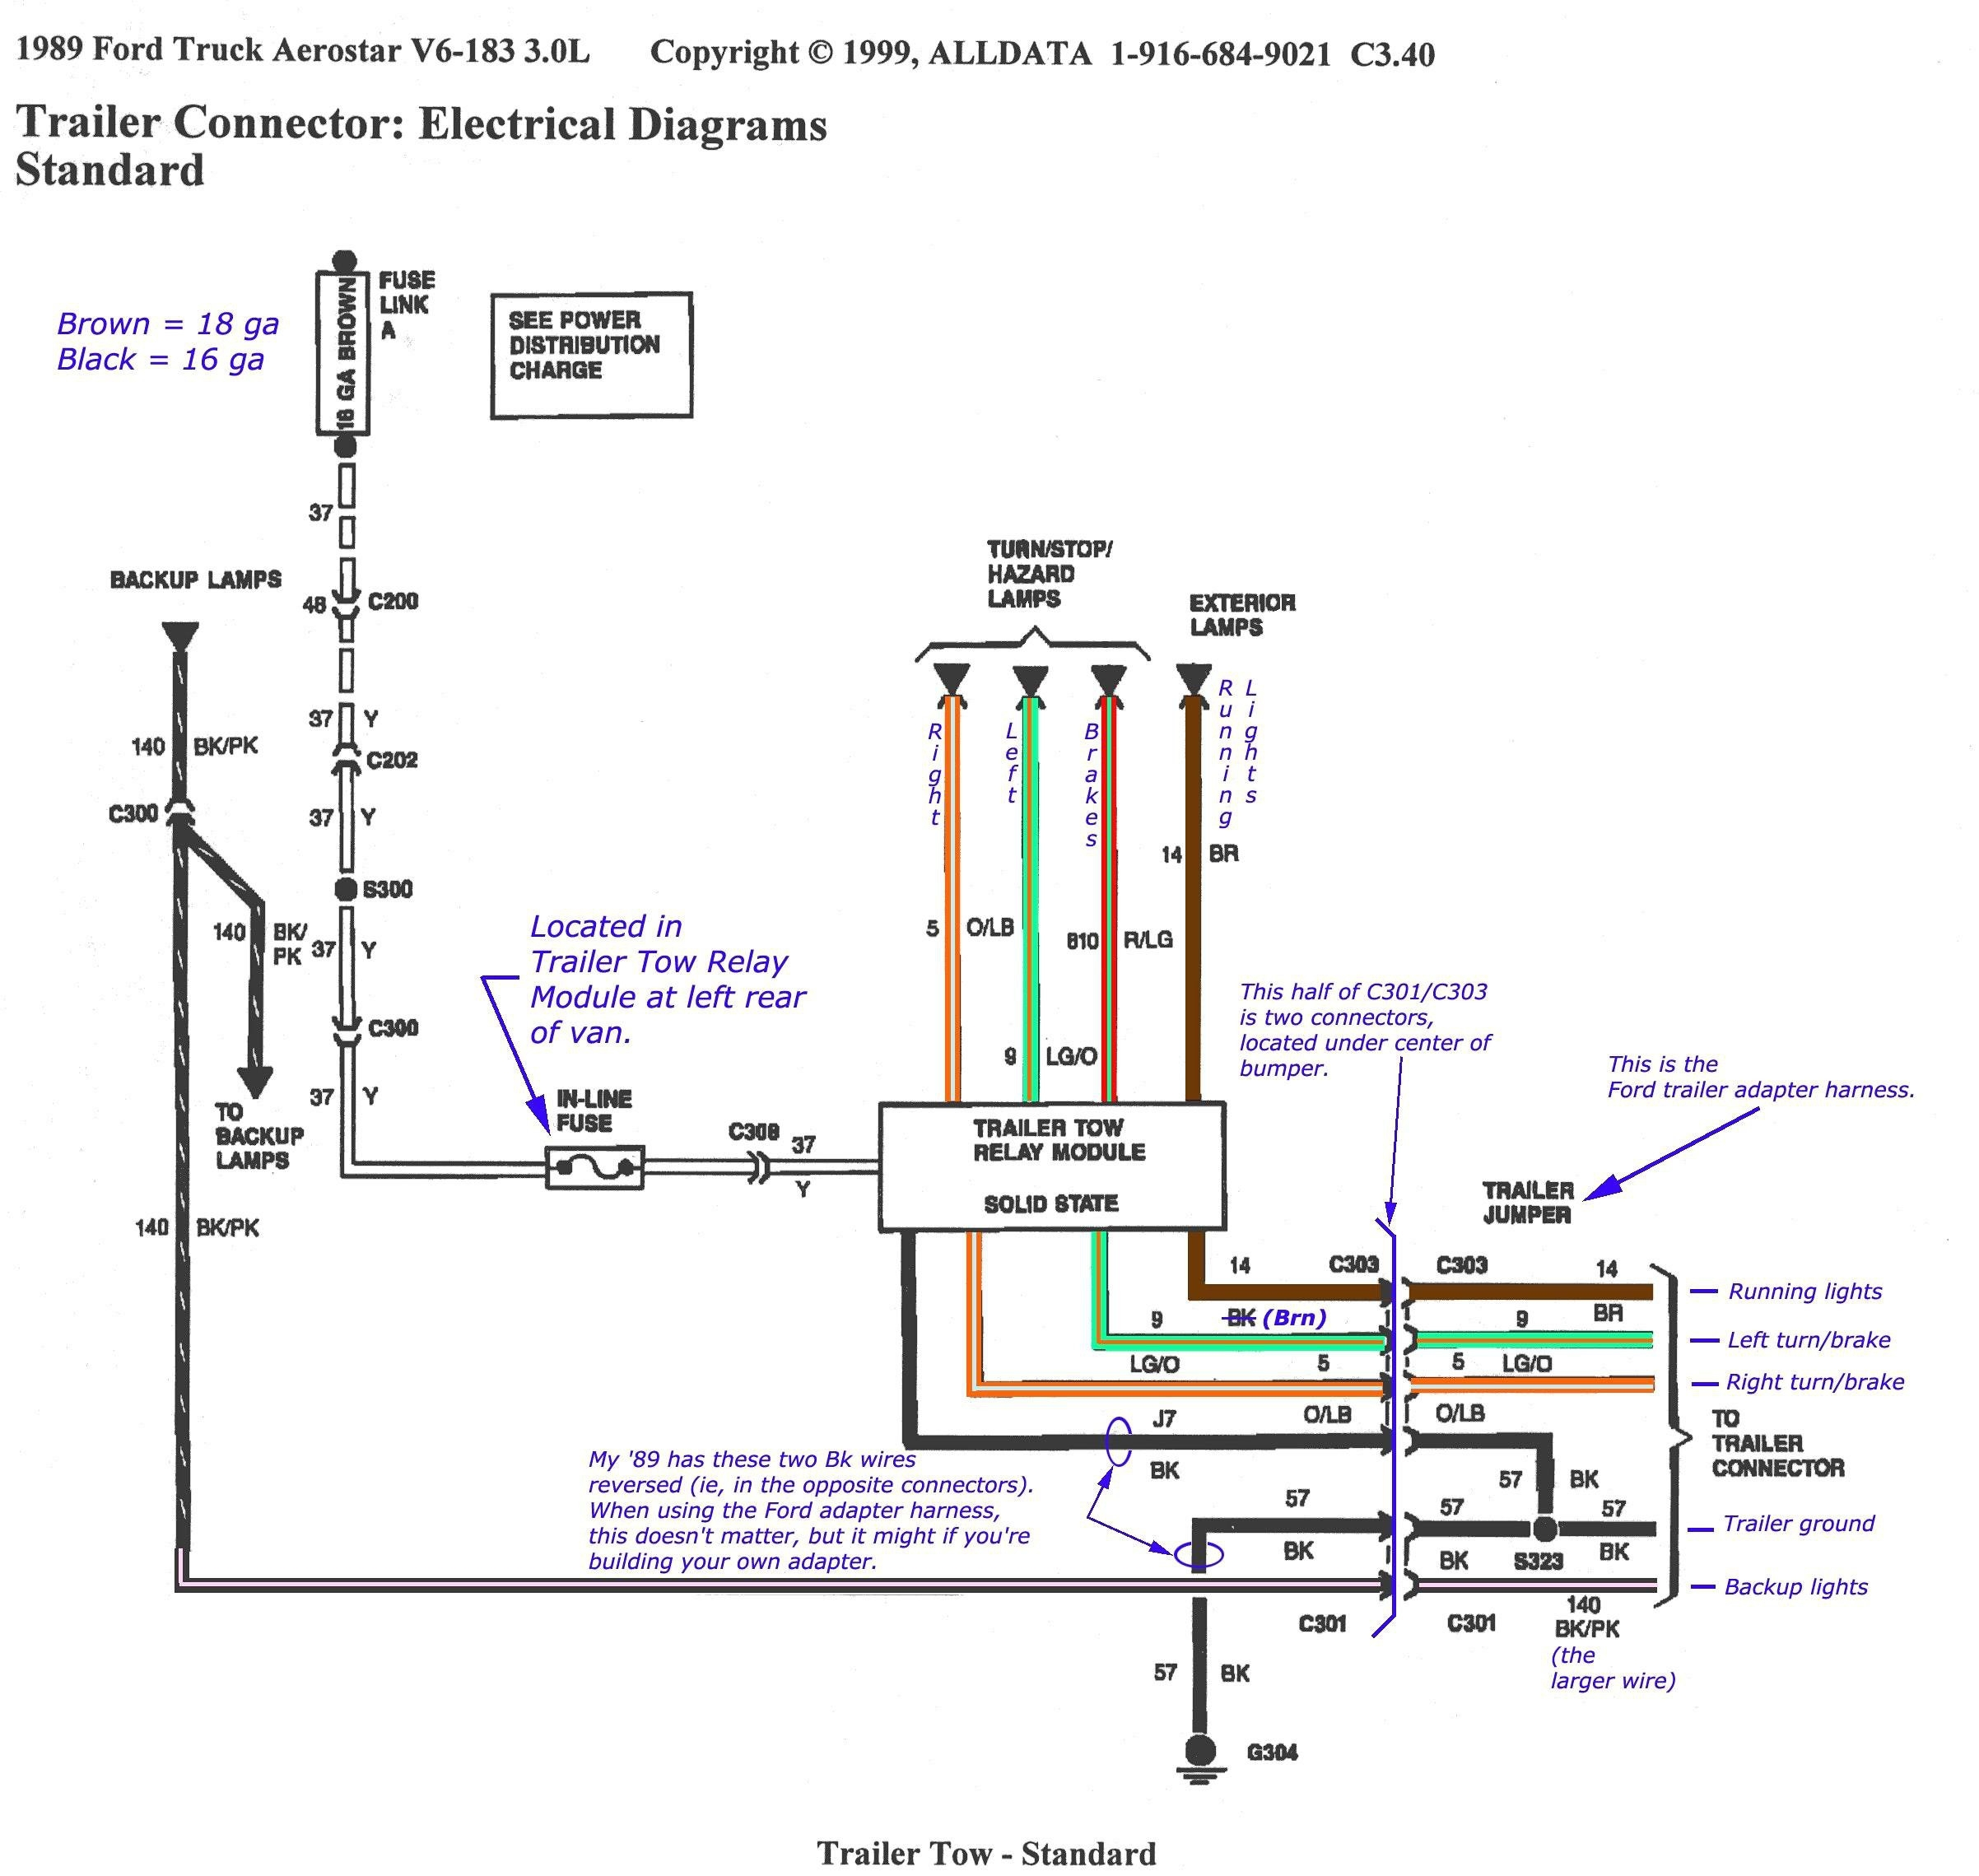 indeeco duct heater wiring diagram Download-Ford F350 Trailer Wiring Diagram Sample 25 Great Electric Duct Heater Wiring Diagram 18-e